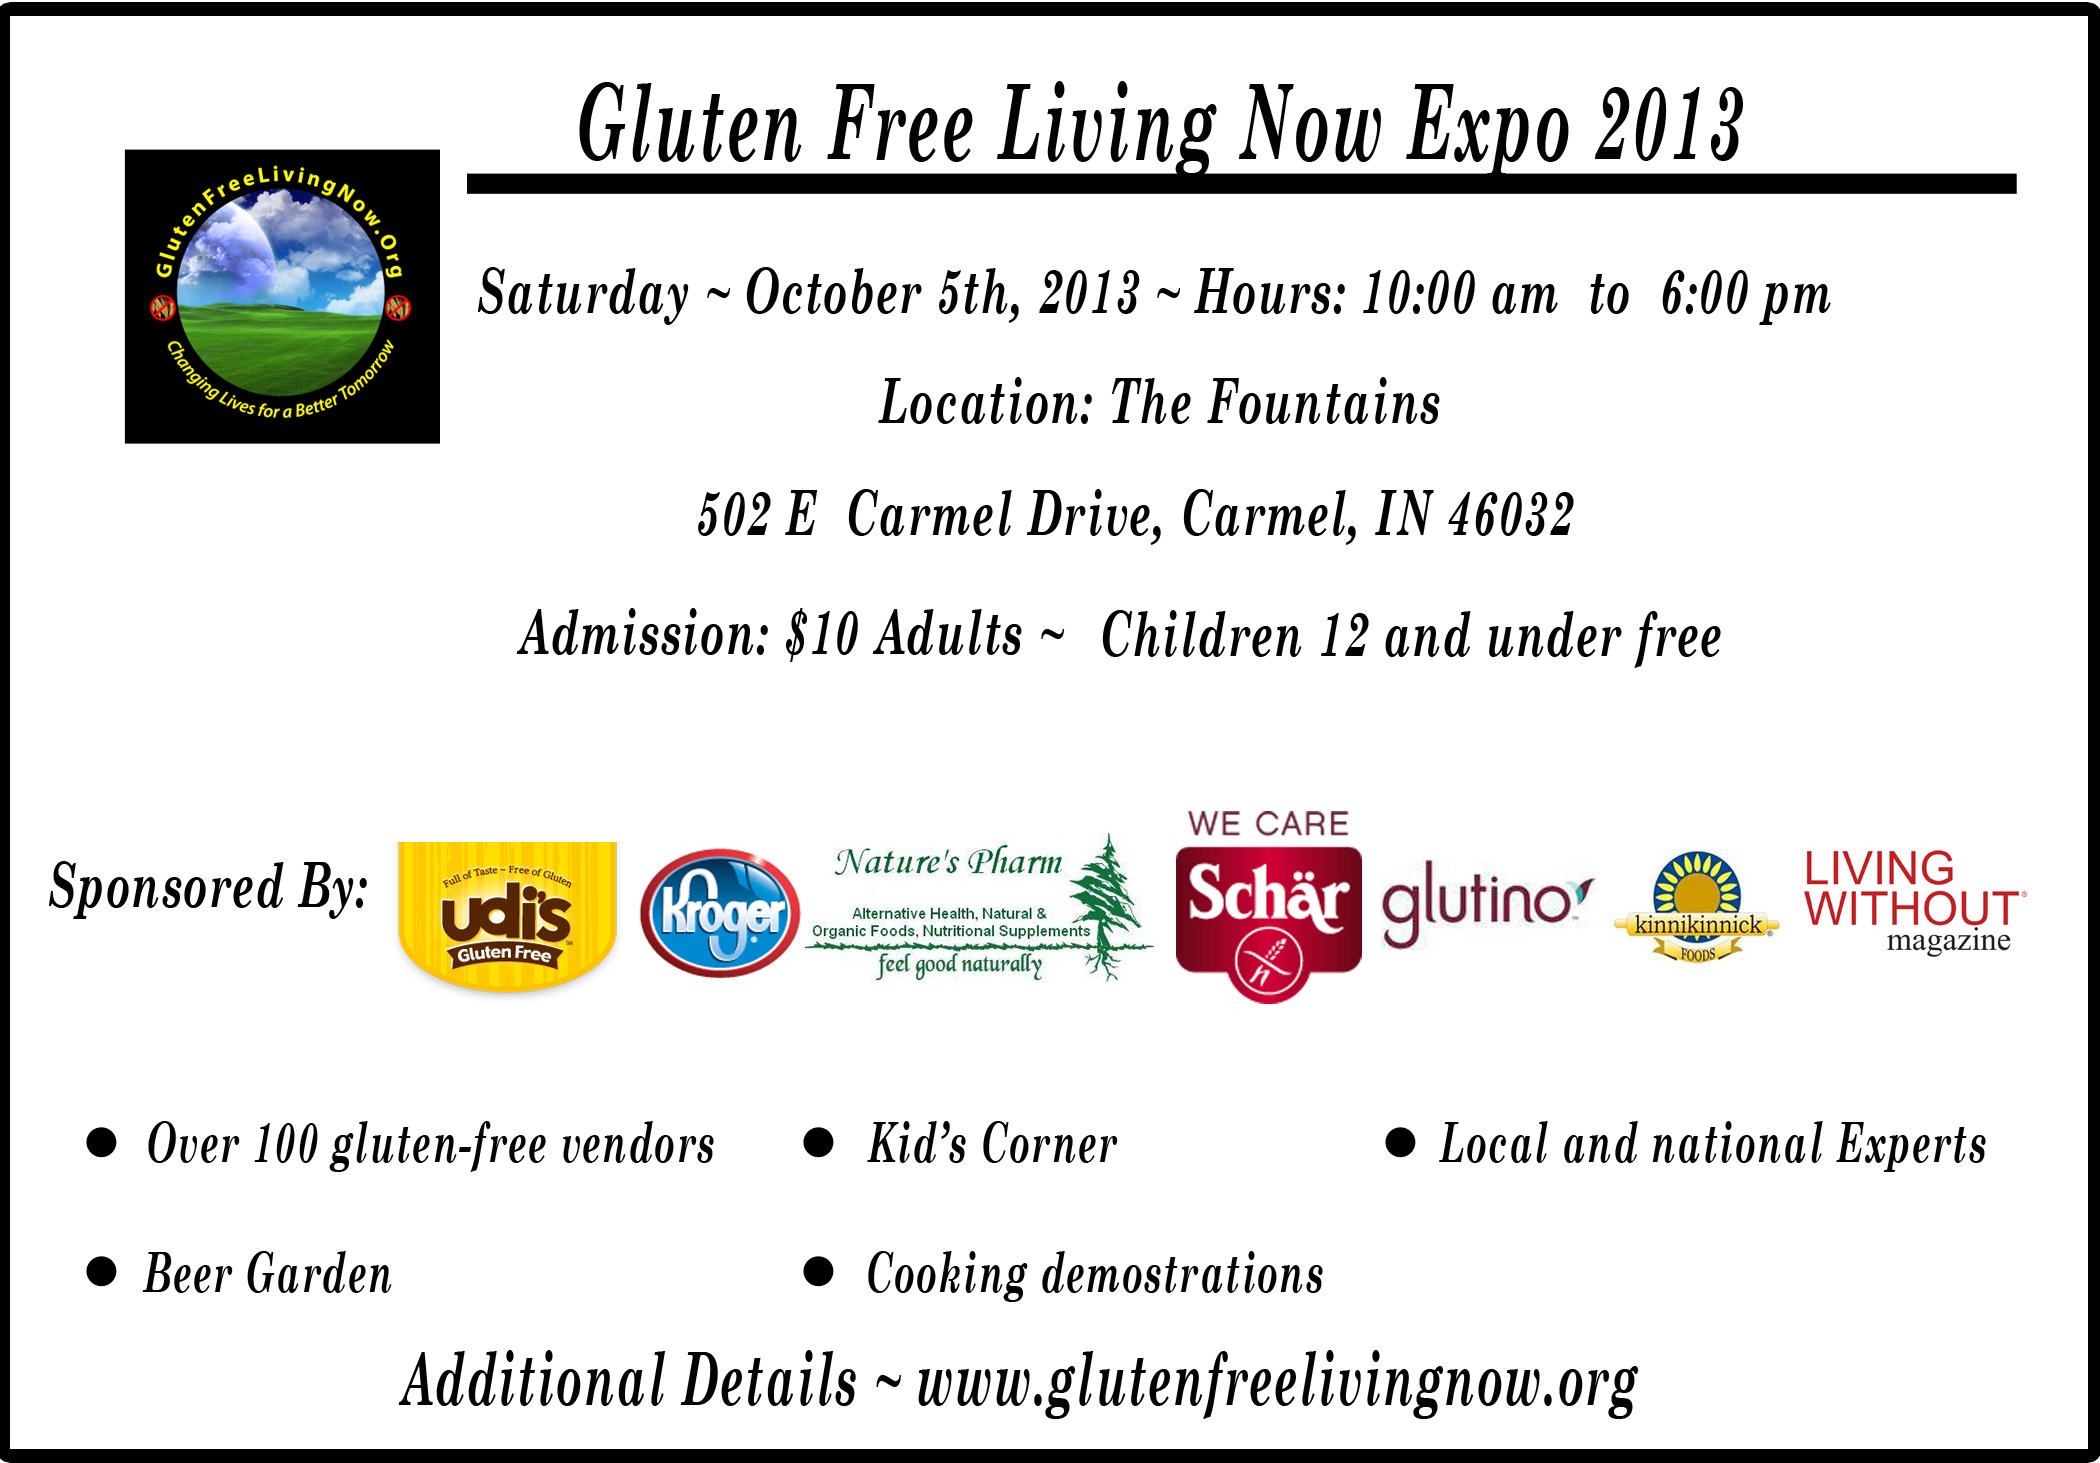 Gluten Free Living Now Expo October 5th in Indiana